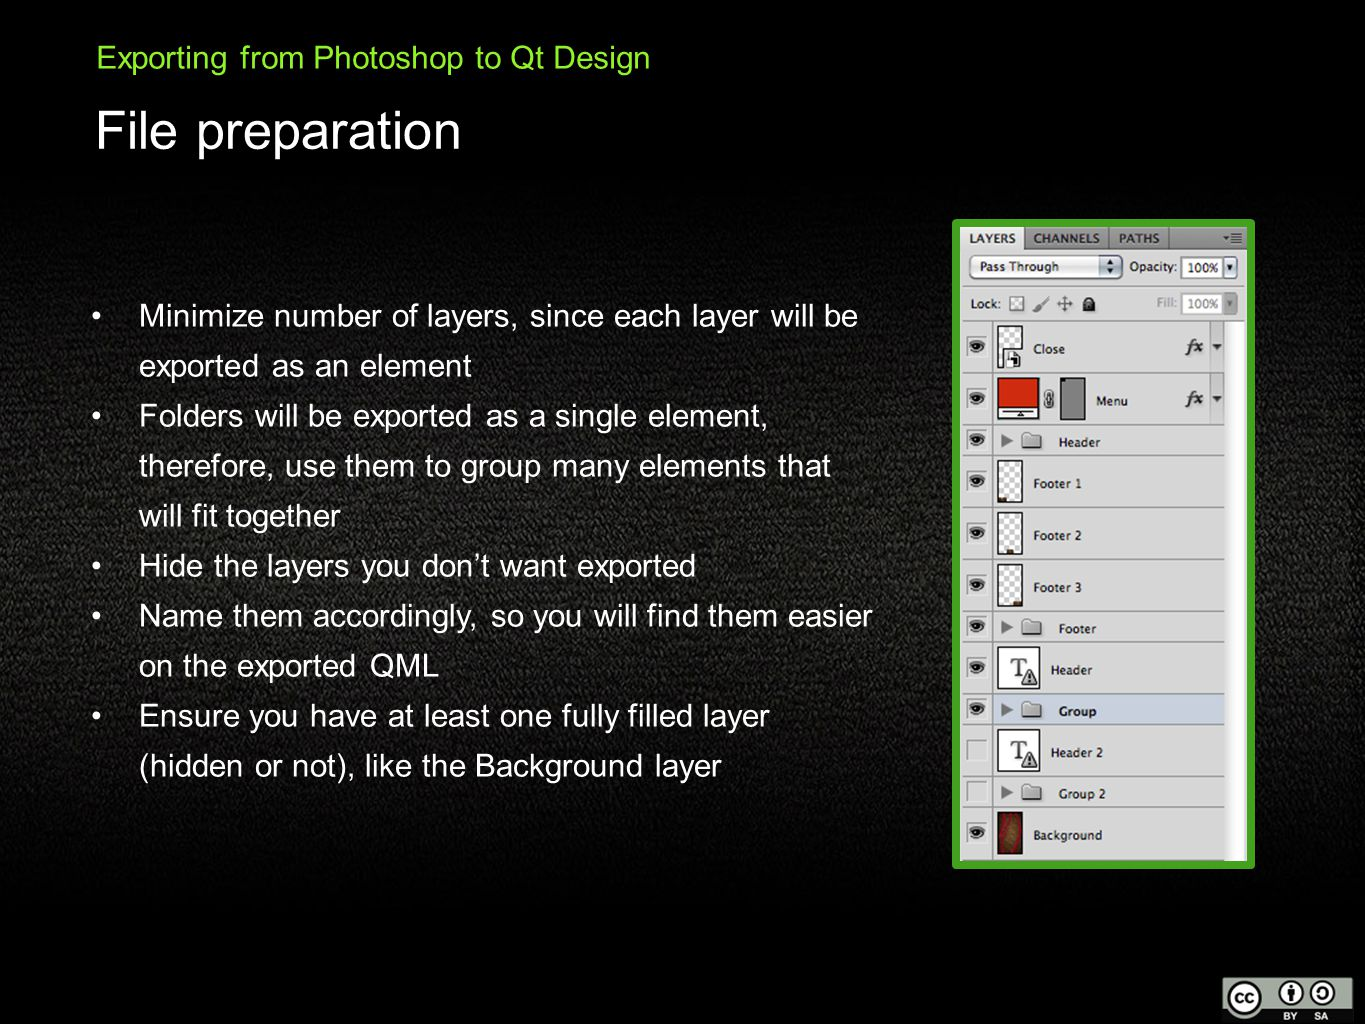 File preparation Exporting from Photoshop to Qt Design Minimize number of layers, since each layer will be exported as an element Folders will be exported as a single element, therefore, use them to group many elements that will fit together Hide the layers you don't want exported Name them accordingly, so you will find them easier on the exported QML Ensure you have at least one fully filled layer (hidden or not), like the Background layer